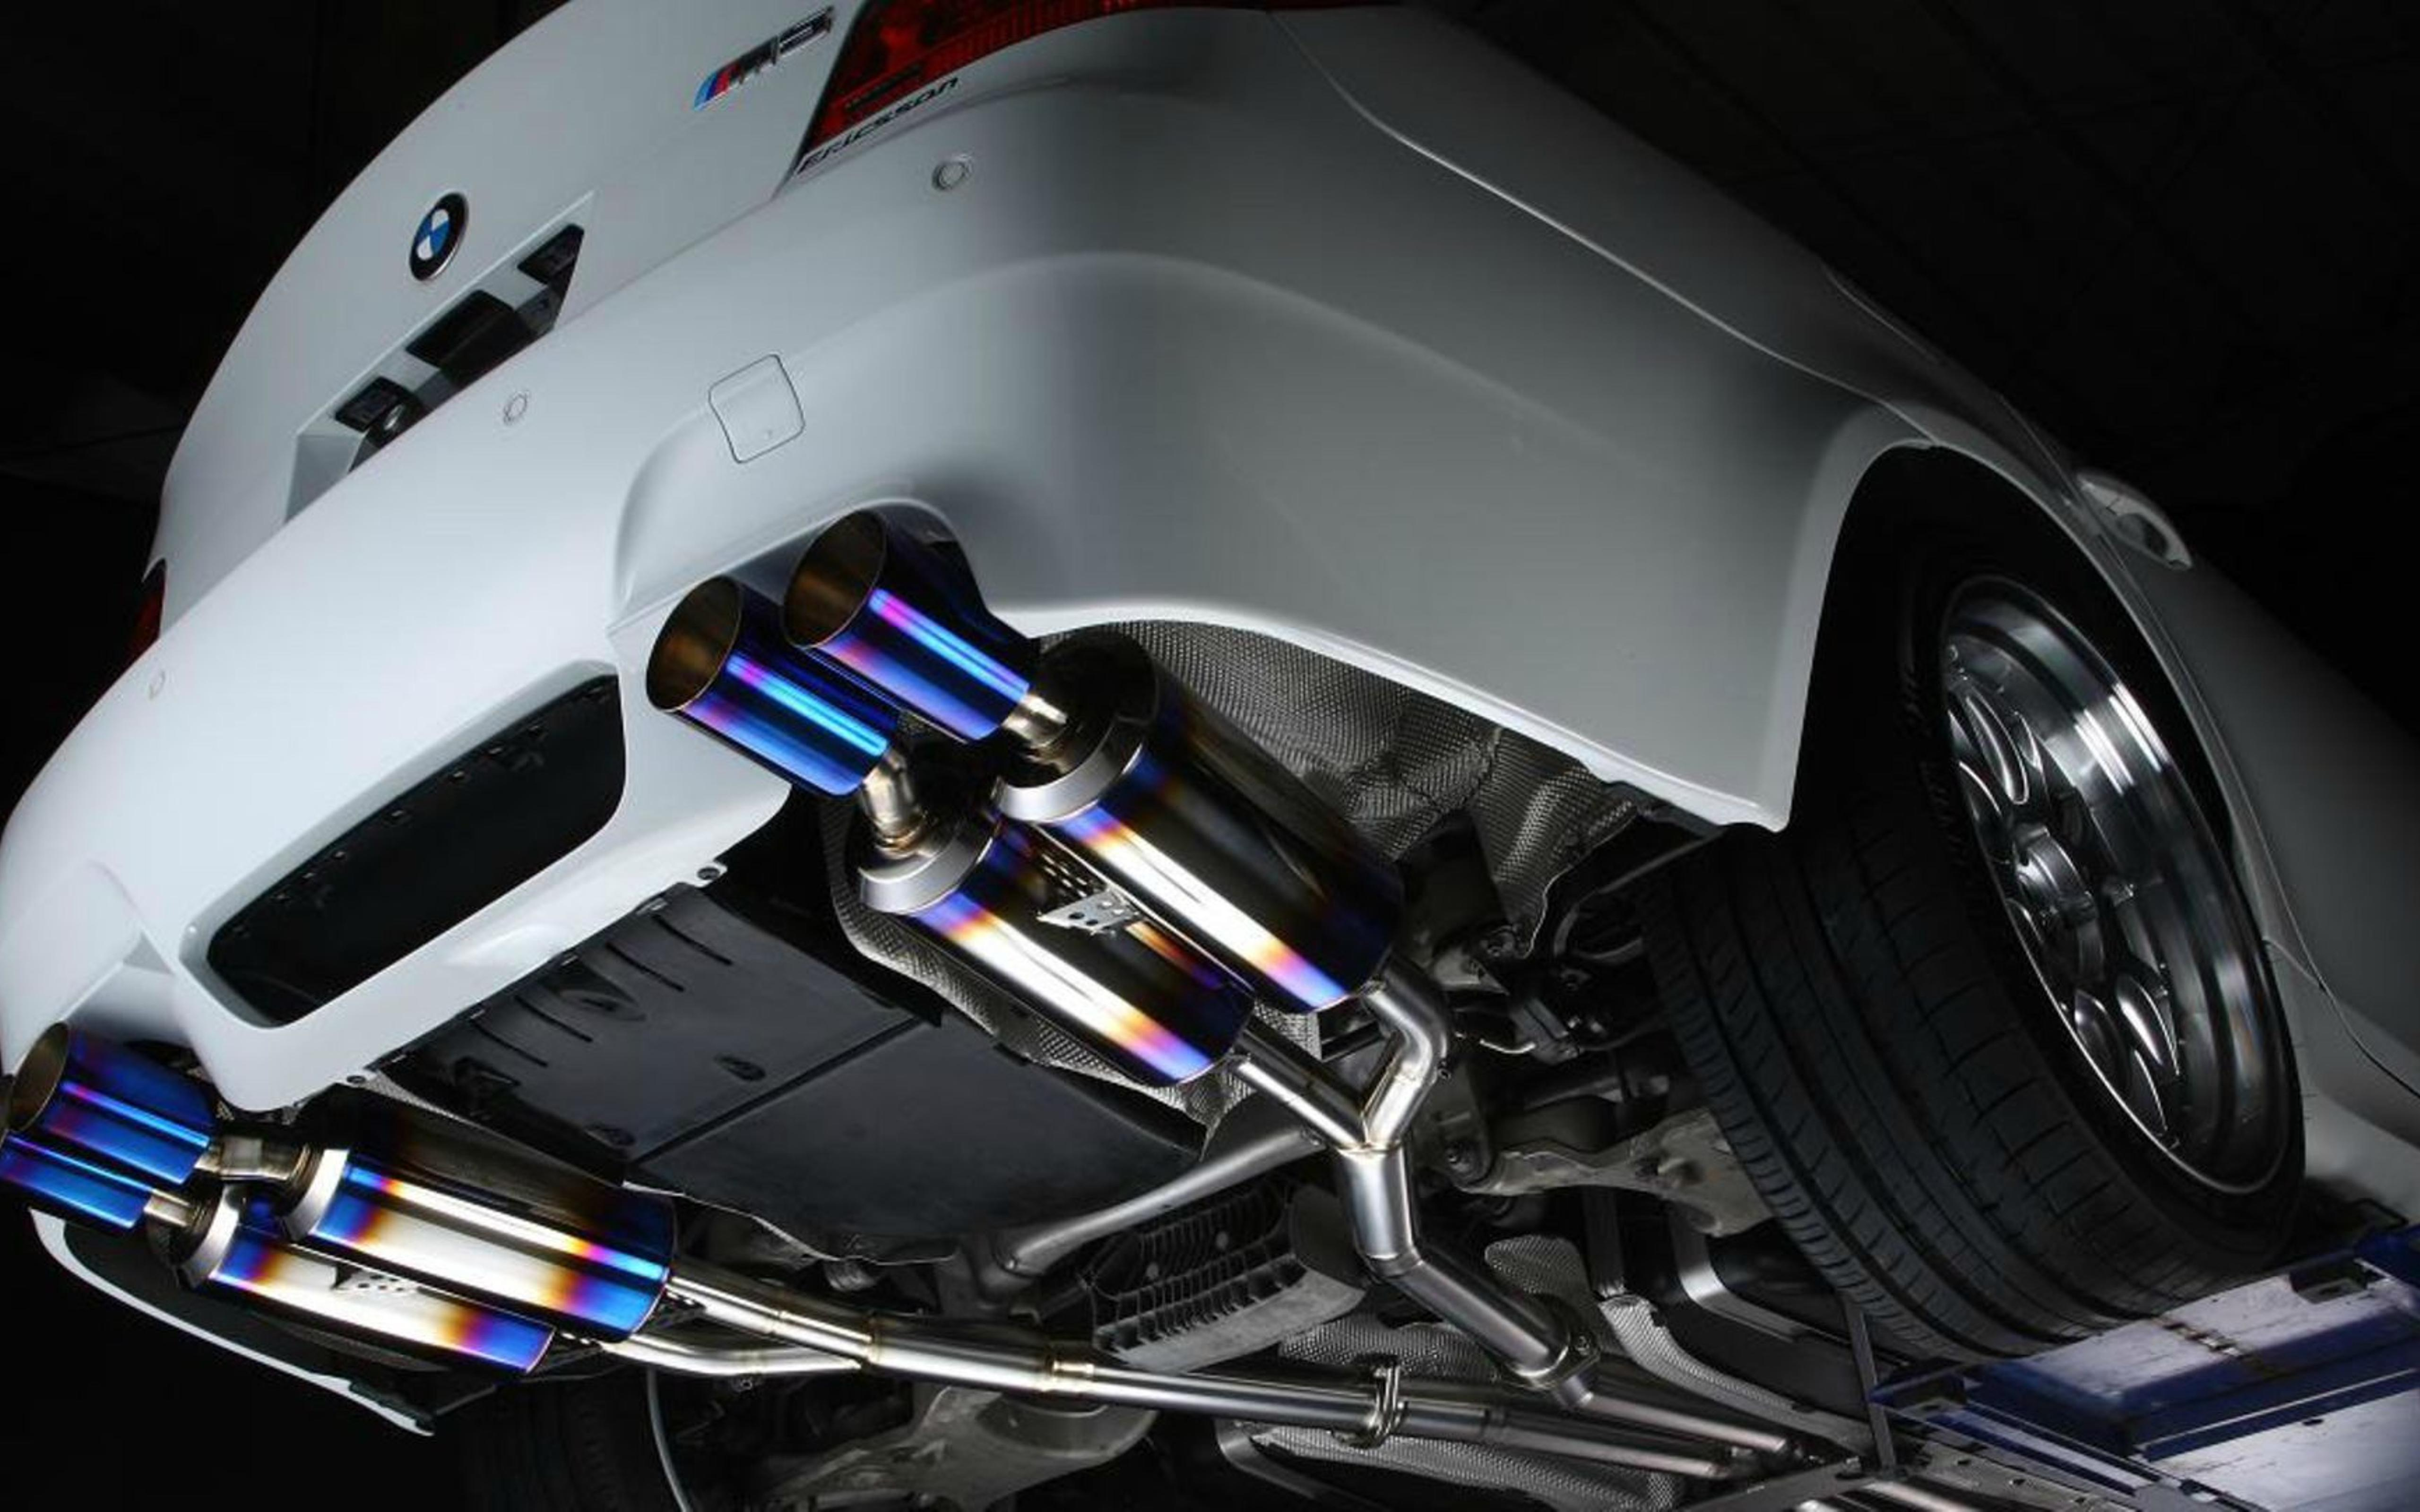 BMW M5 exhaust pipes Wallpaper Download 5120x3200